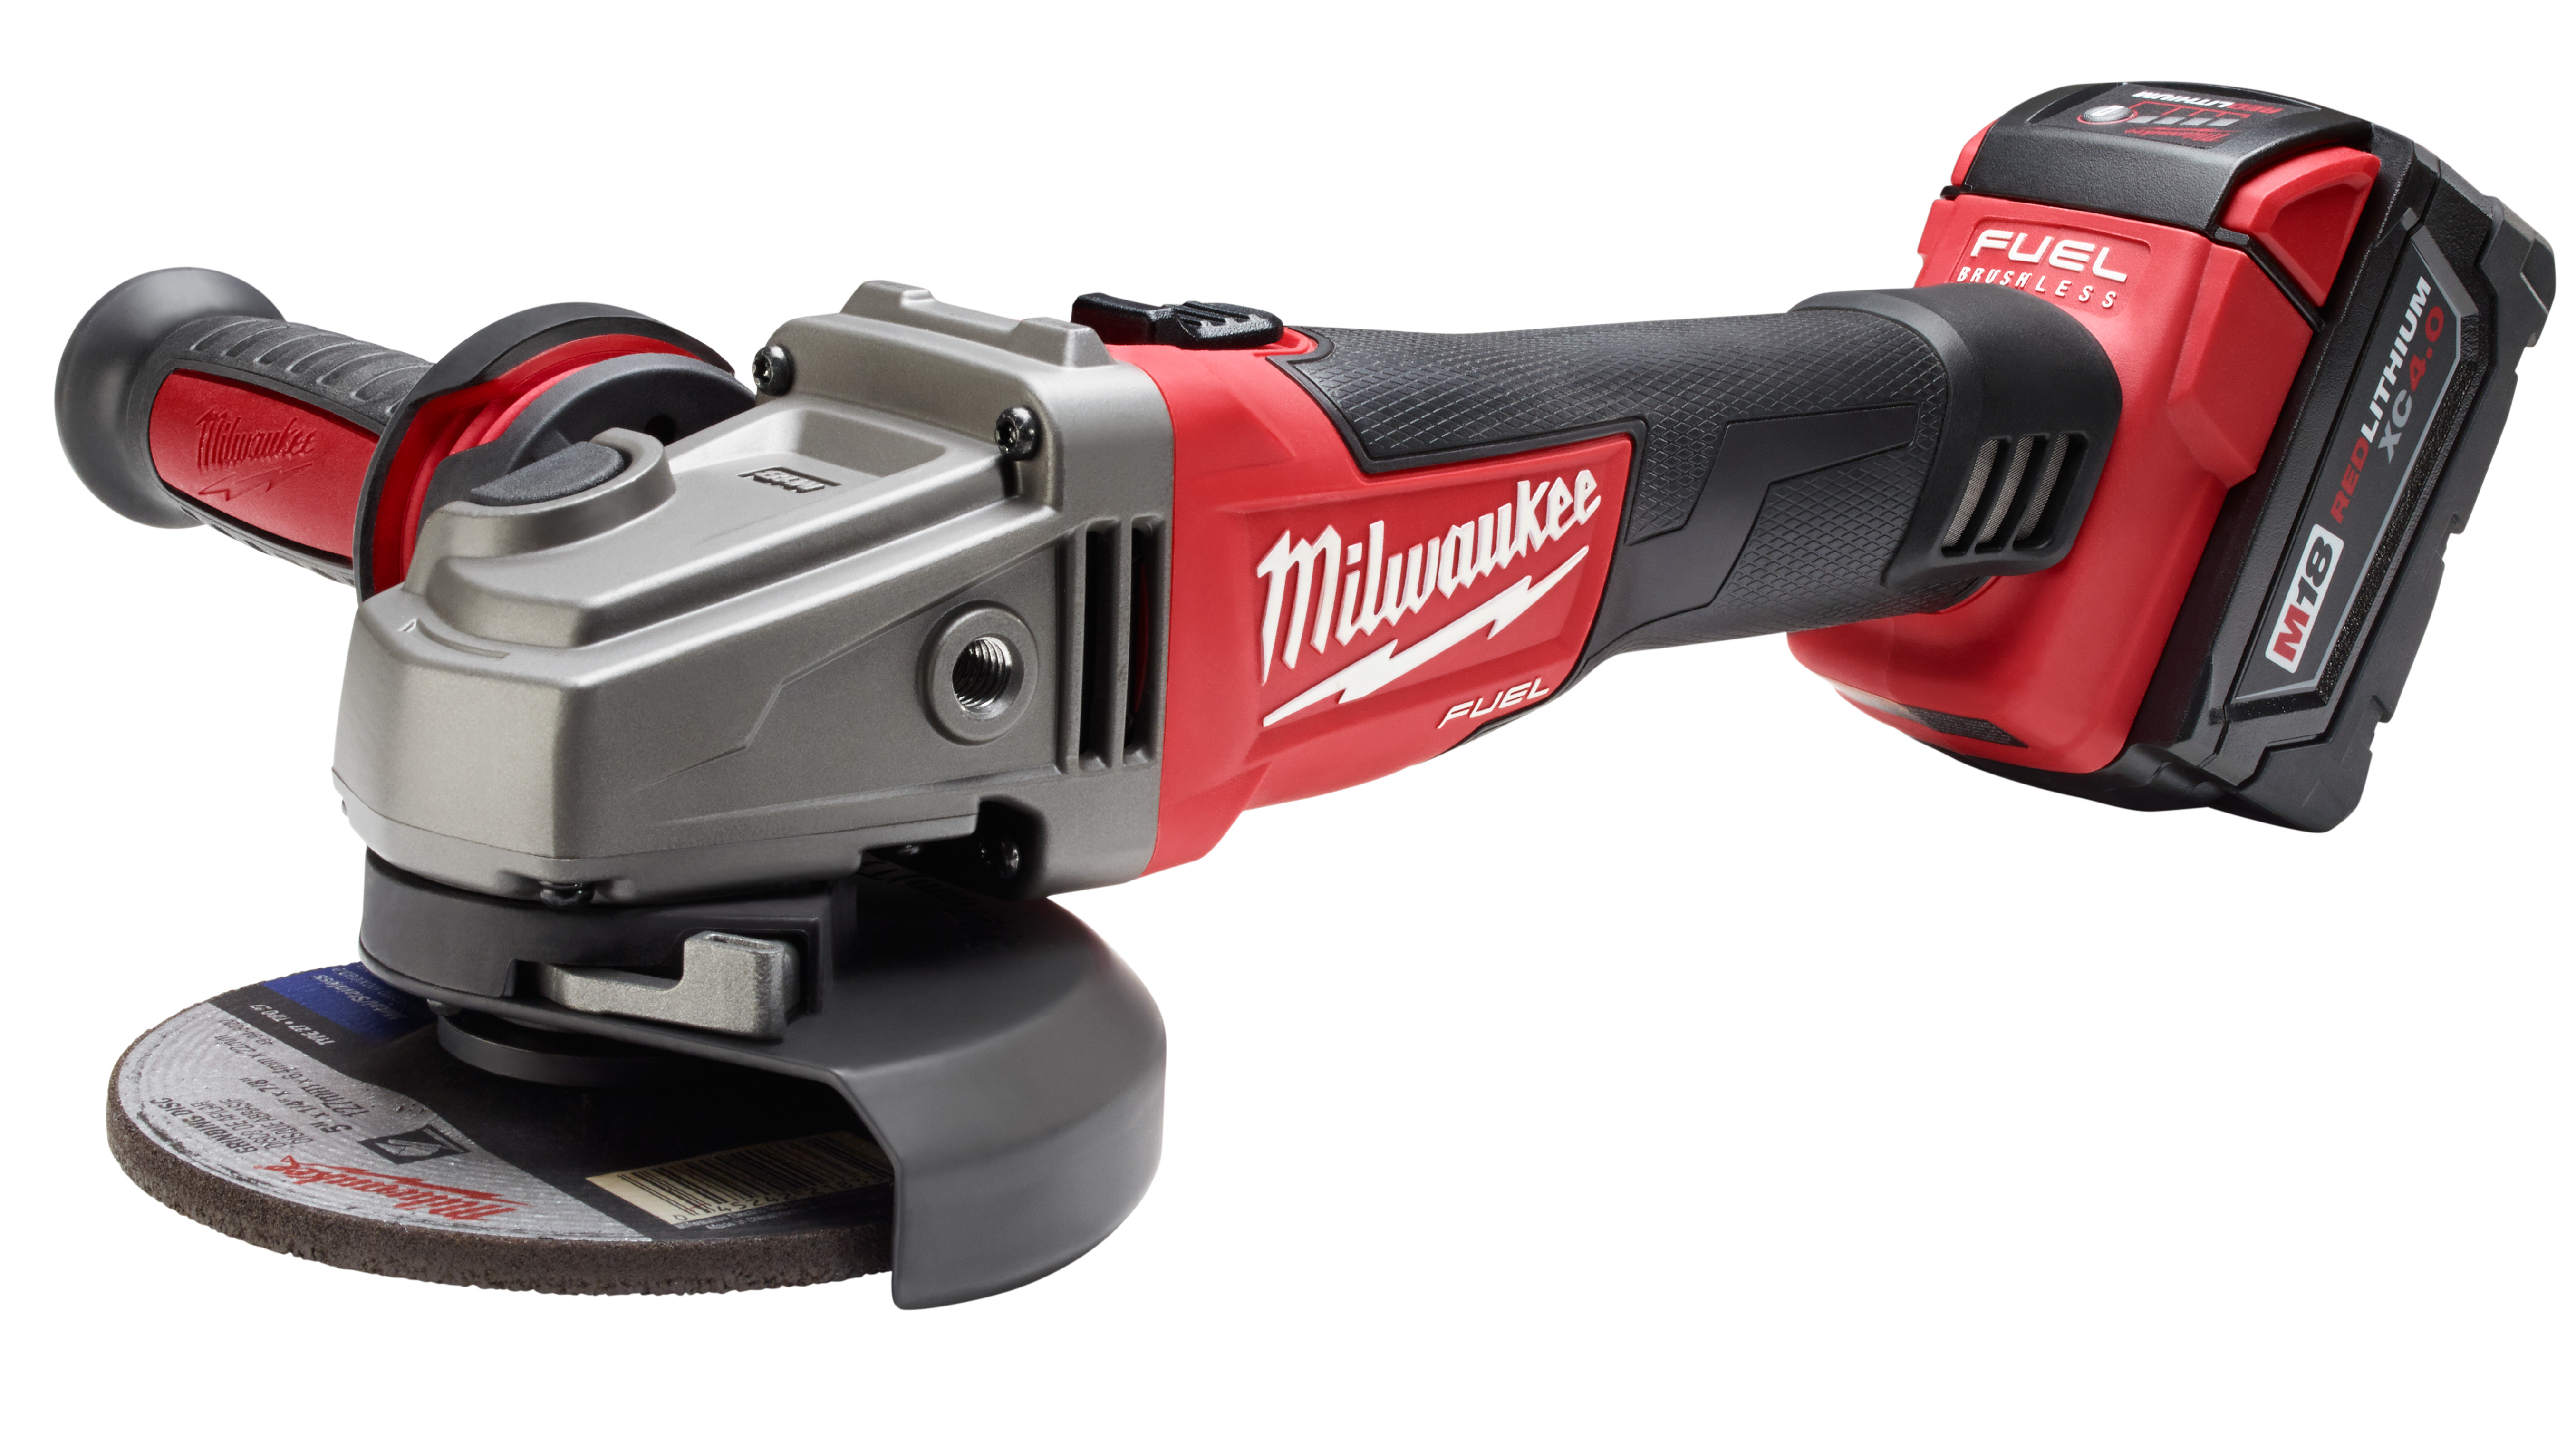 Milwaukee® M18™ FUEL™ 2781-22 Cordless Grinder Kit, 5 in Dia Wheel, 5/8-11 Arbor/Shank, 18 VDC, Lithium-Ion Battery, 2 Batteries, Lock-On Slide Switch/Trigger Lock Switch Switch